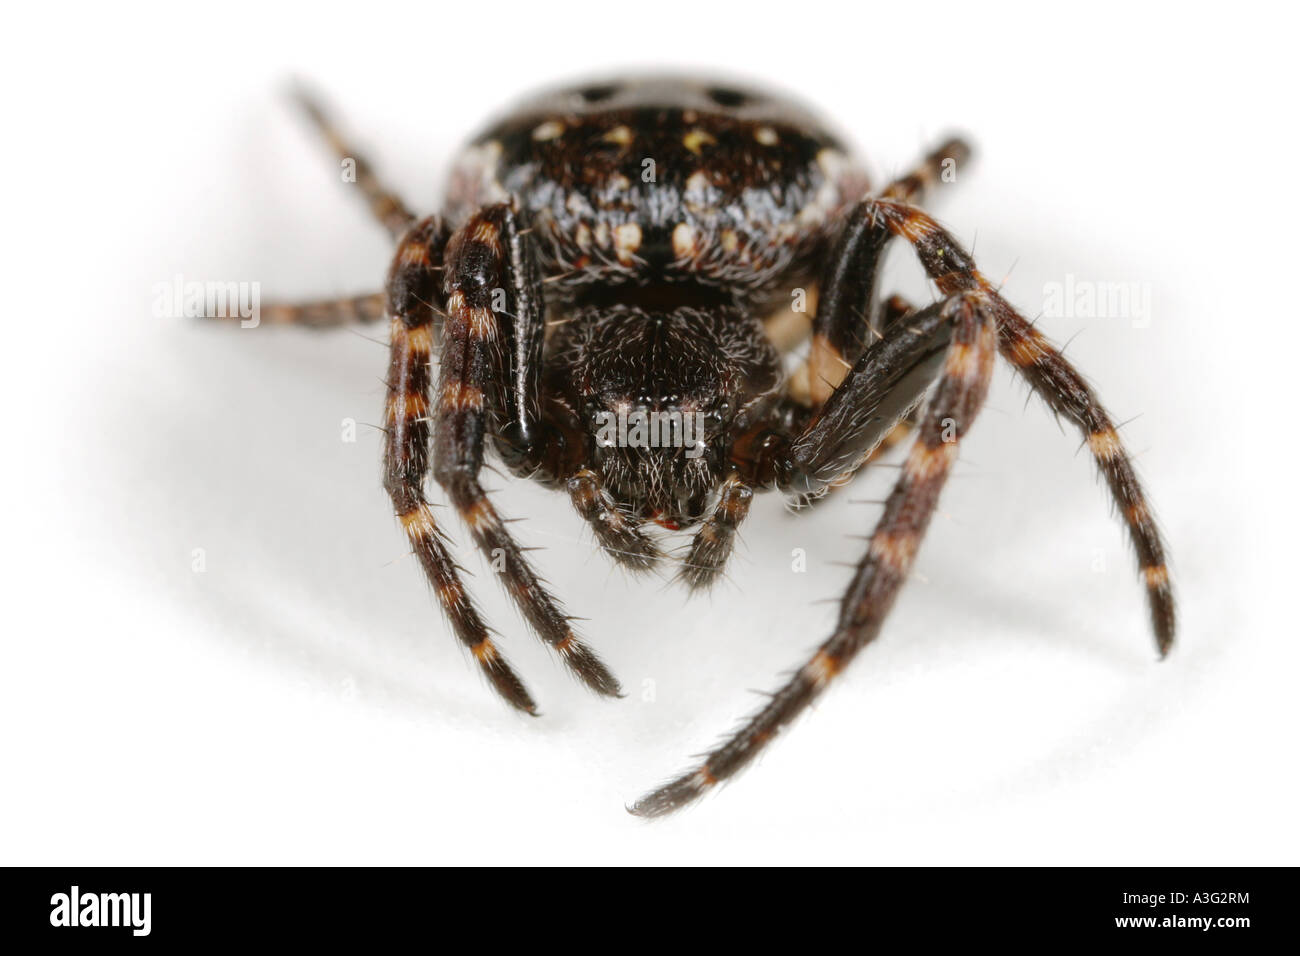 A Nuctenea umbratica spider, Araneidae family, on white background. Head on view. Stock Photo